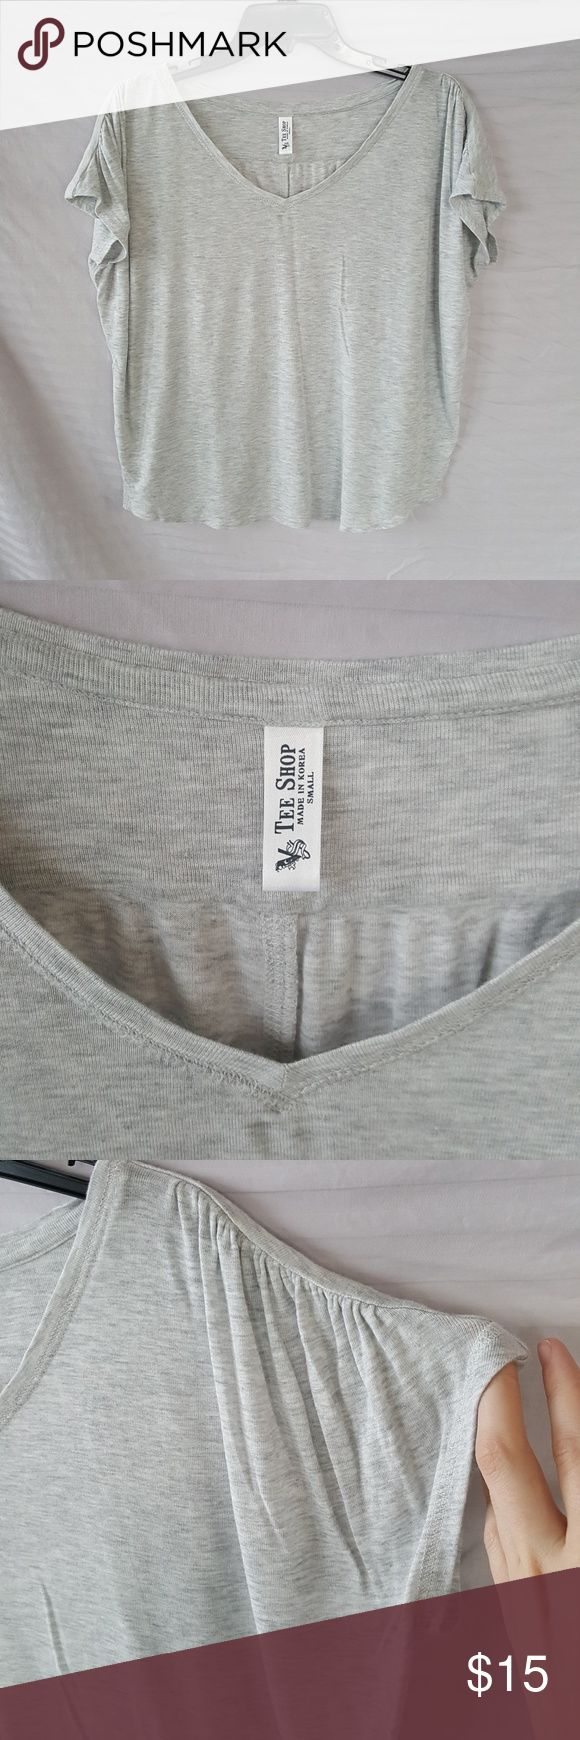 Victoria's Secret Tee Heather Gray Victoria's Secret Tee, Heather Gray, marl, scooping v-neck, curved hem at sides, sleeves have cute ruching, flowy loose fit.  Back of right sleeves has a tiny hole, shown in pics, otherwise in excellent condition.  Bought through Victoria's Secret website, tag says Tee Shop.  Make offers on items and bundles! Victoria's Secret Tops Tees - Short Sleeve